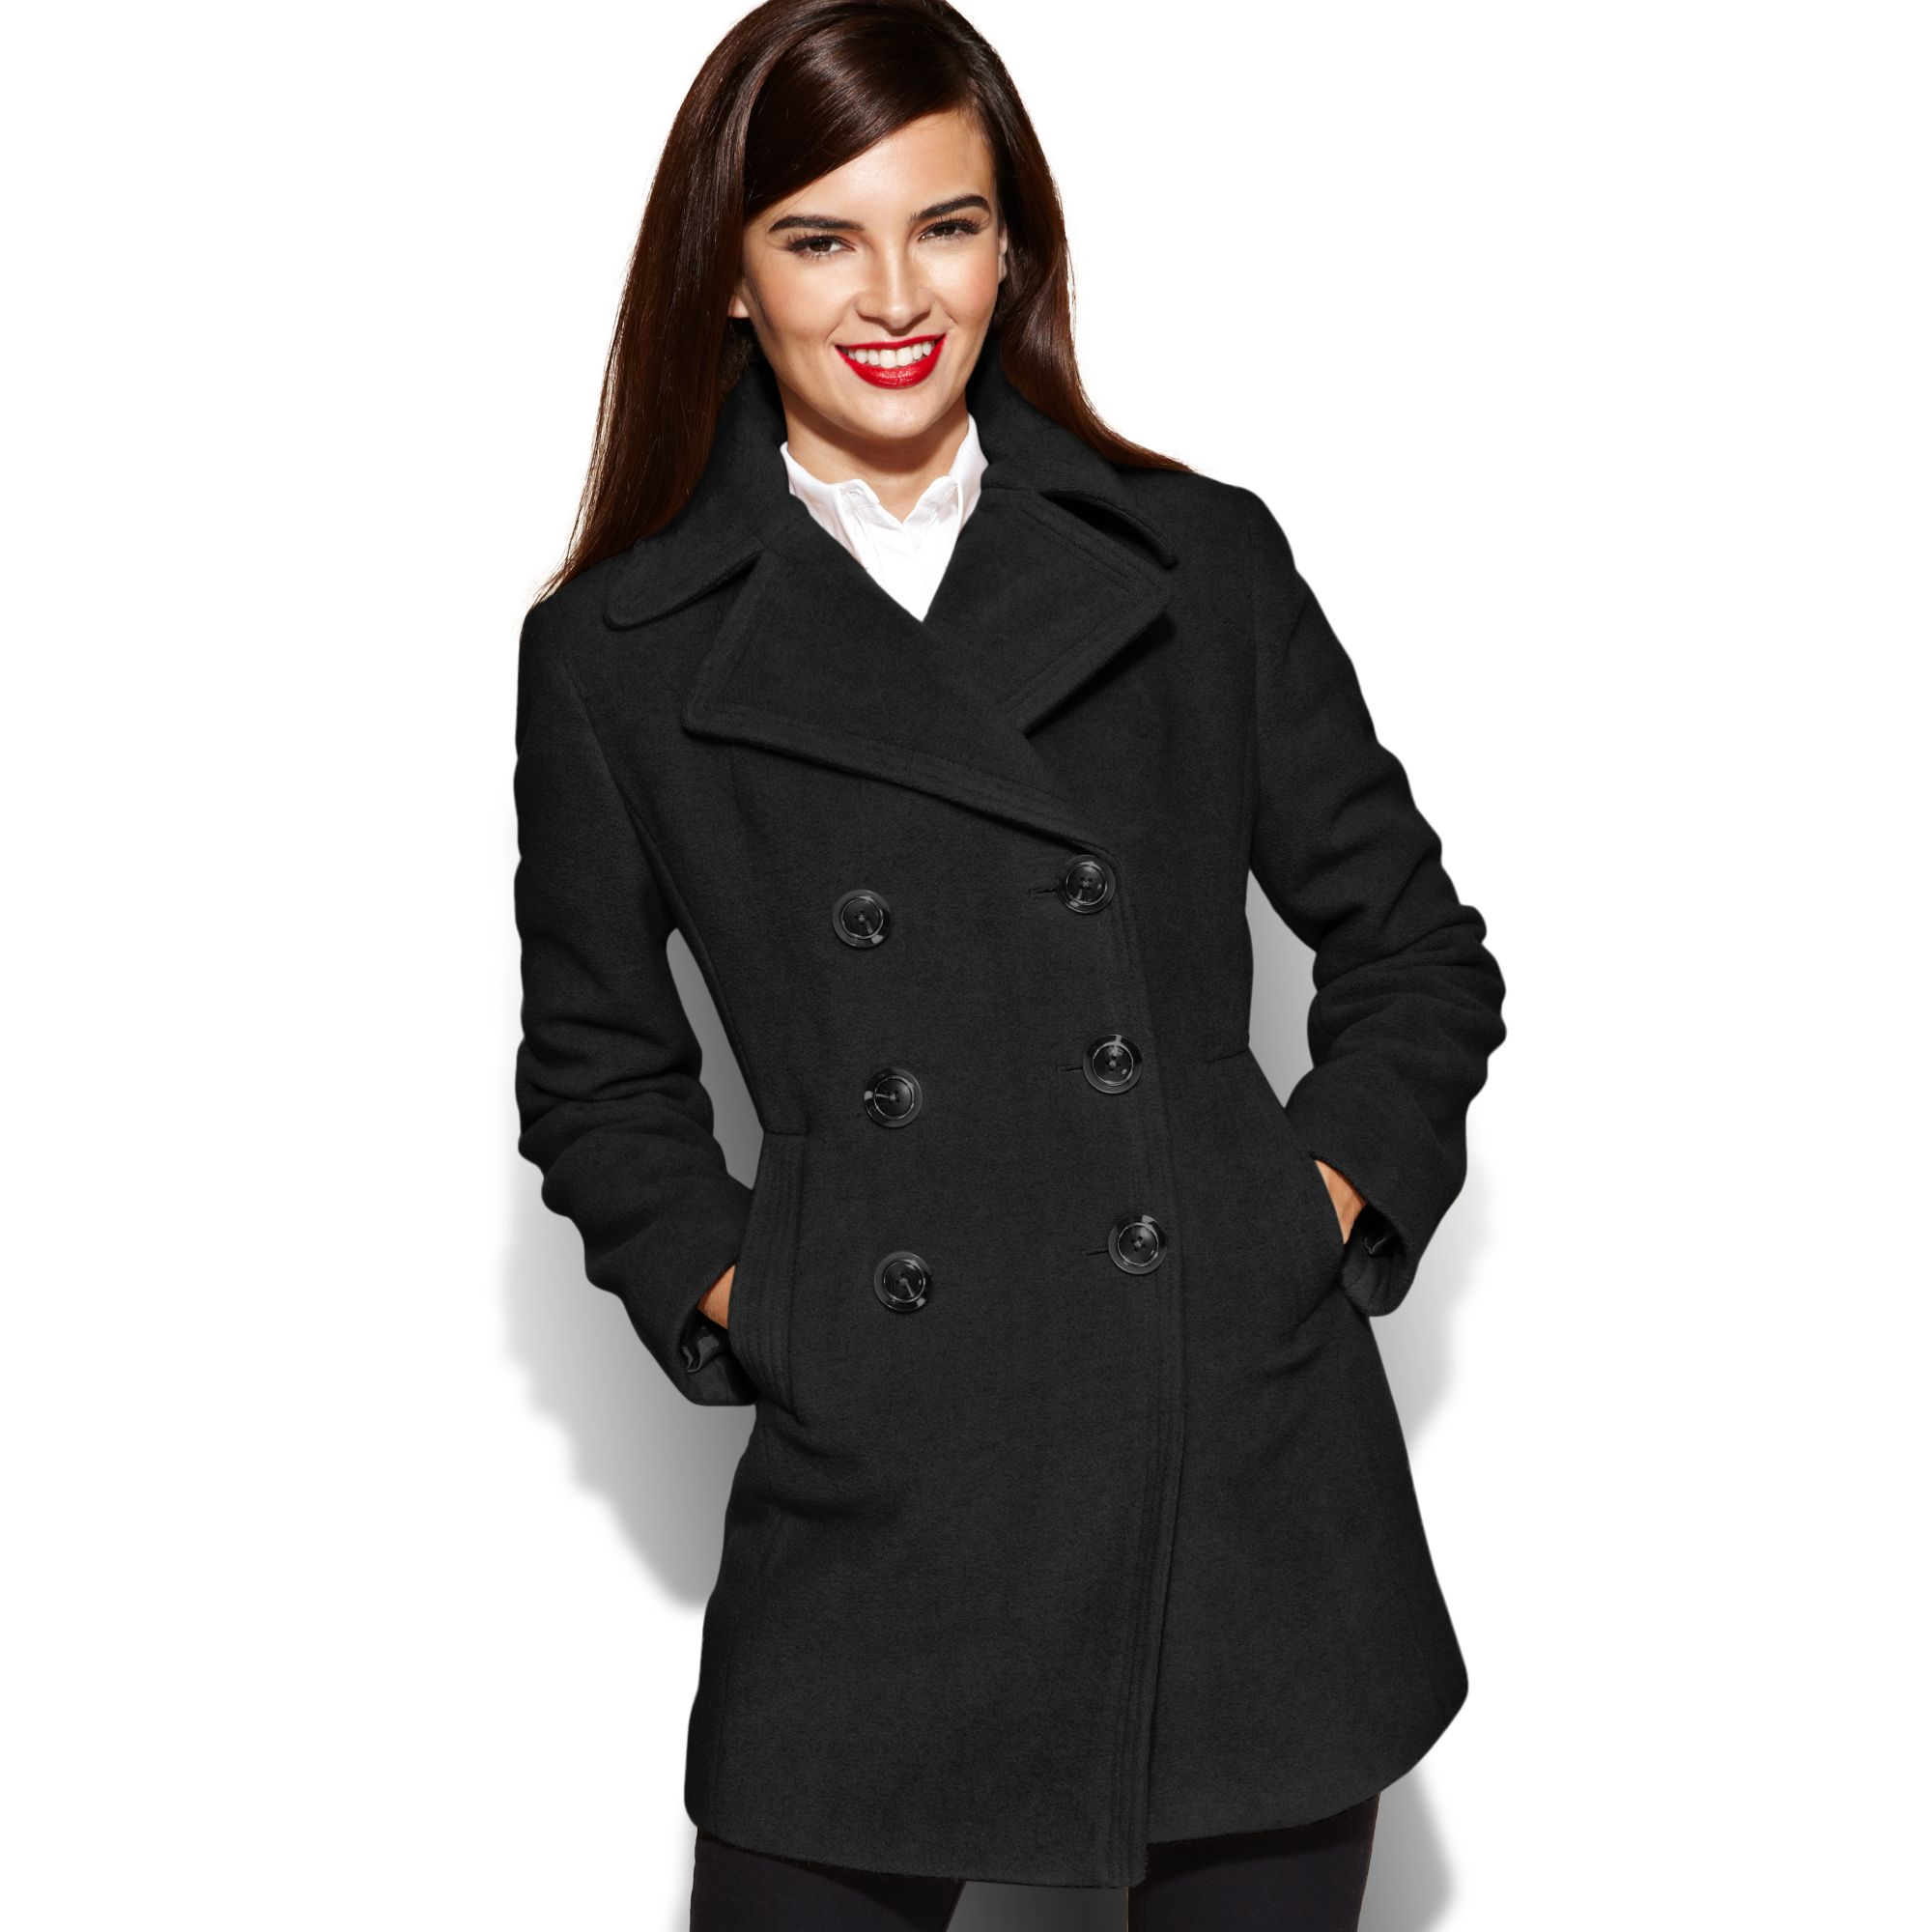 ae6cdc571c9 Kenneth Cole Reaction Double breasted Wool-blend Pea Coat in Black ...